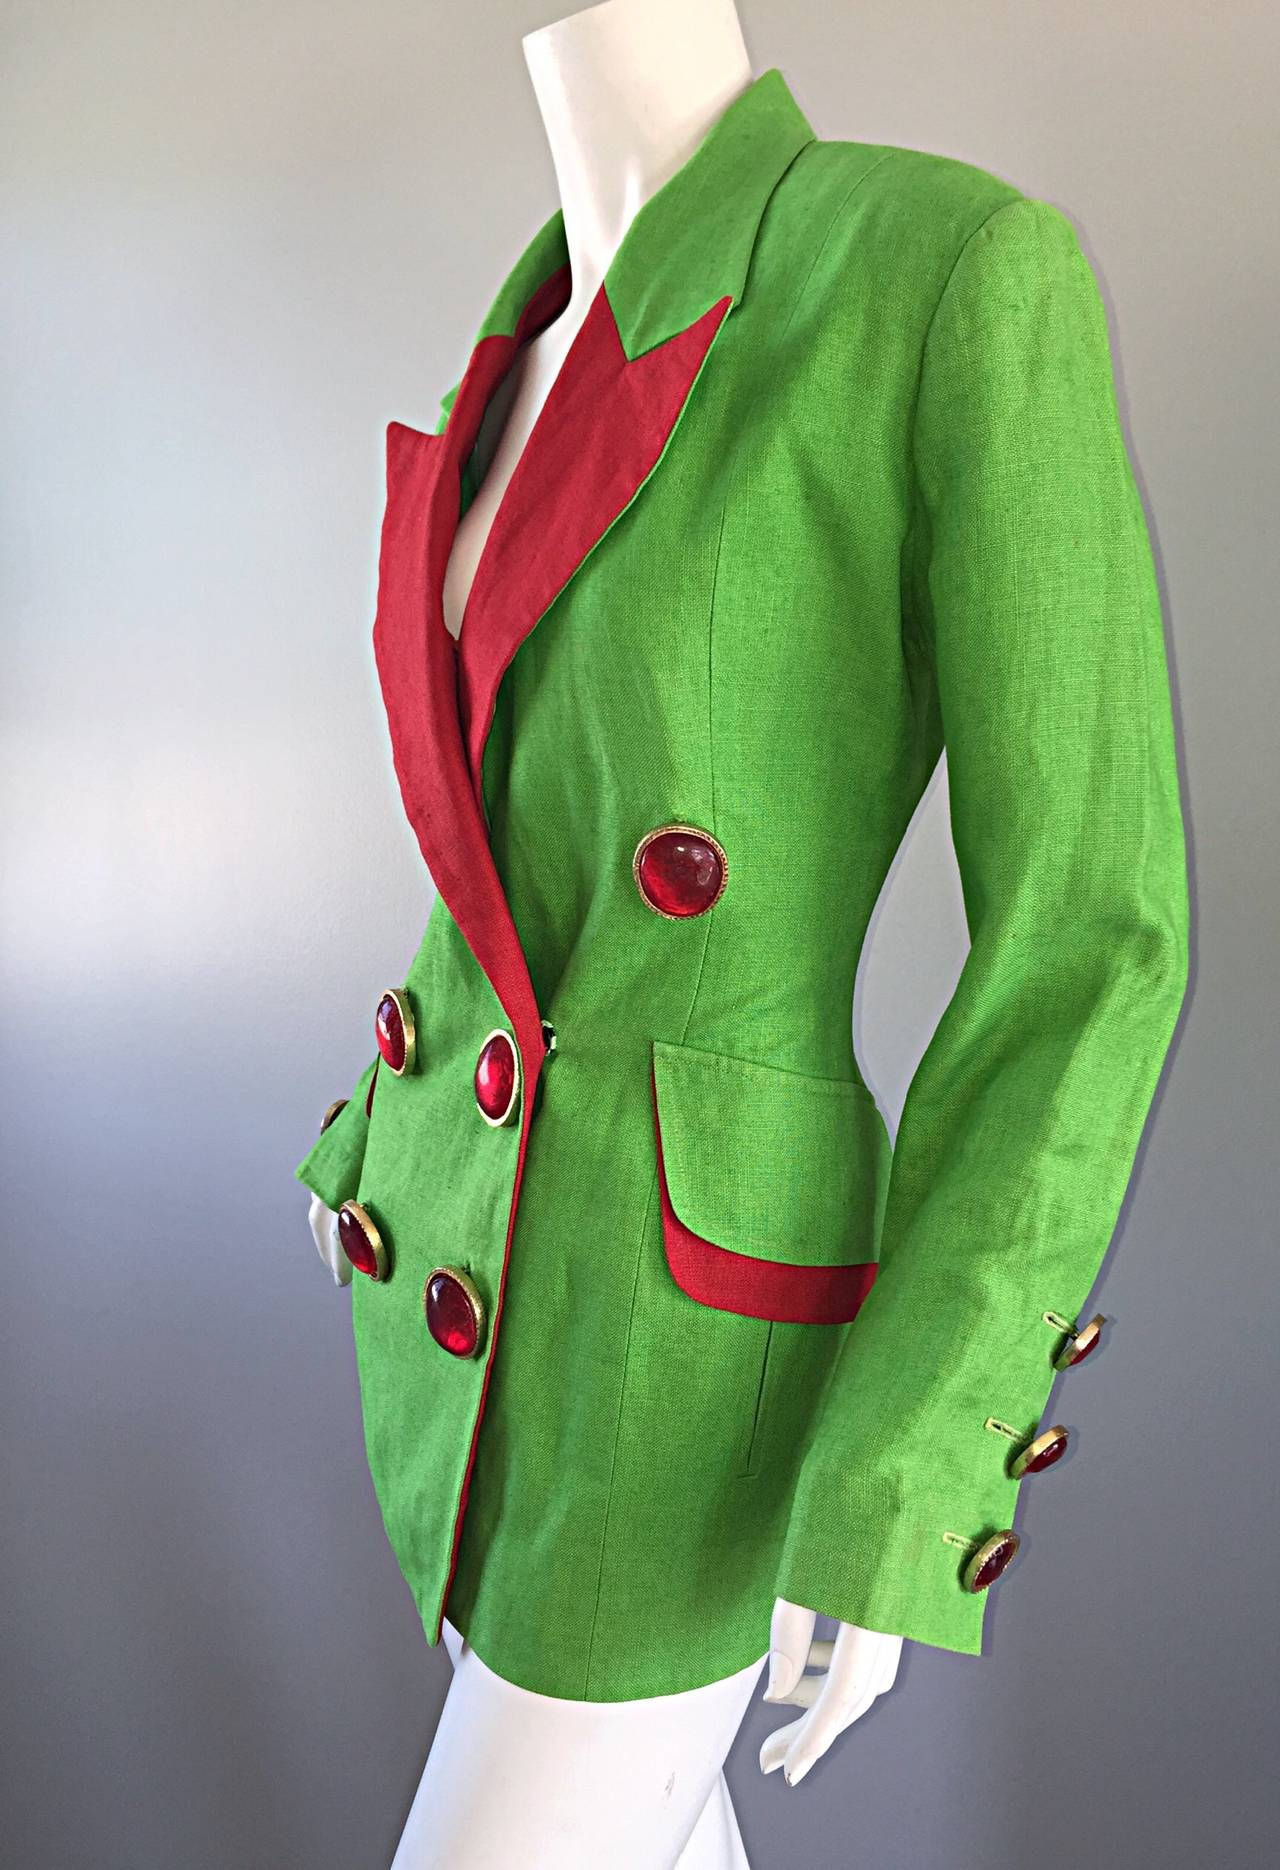 Incredible Vintage Gemma Kahng Green + Red Blazer w/ Gripoix Buttons For Sale 3